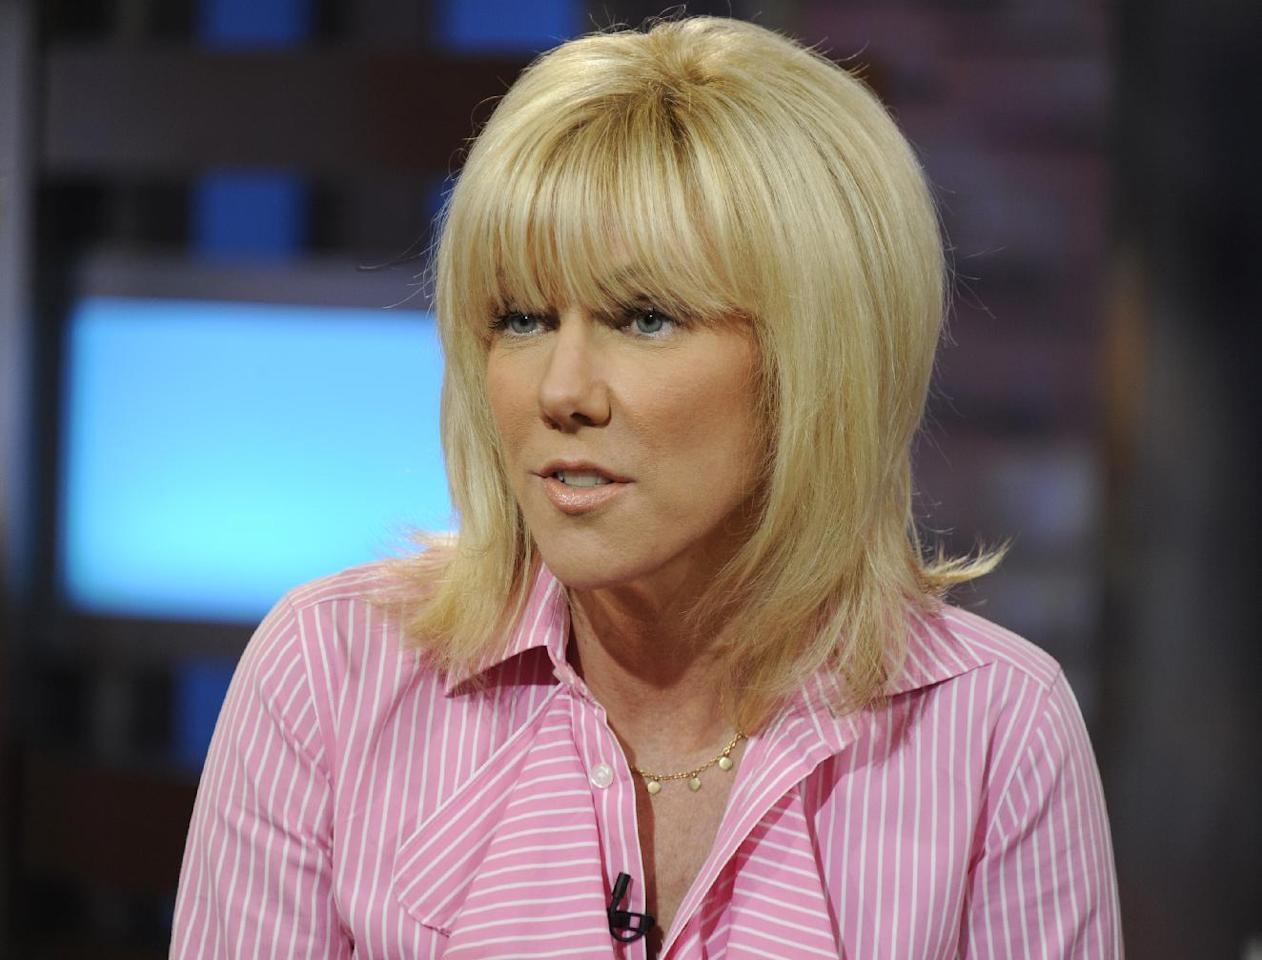 "This image released by ABC shows Rielle Hunter during an interview on the morning show ""Good Morning America,"" Tuesday, June 26, 2012 in New York. Hunter says she and former presidential candidate John Edwards have ended their relationship. Hunter told ABC's ""Good Morning America"" on Tuesday that she and Edwards were still a couple until late last week, as details from Hunter's memoir ""What Really Happened: John Edwards, Our Daughter and Me,"" became public. The breakup was painful, but Hunter said Edwards will still be involved with their daughter, Quinn, who is 4 years old and lives with Hunter. (AP Photo/ABC, Ida Mae Astute)"